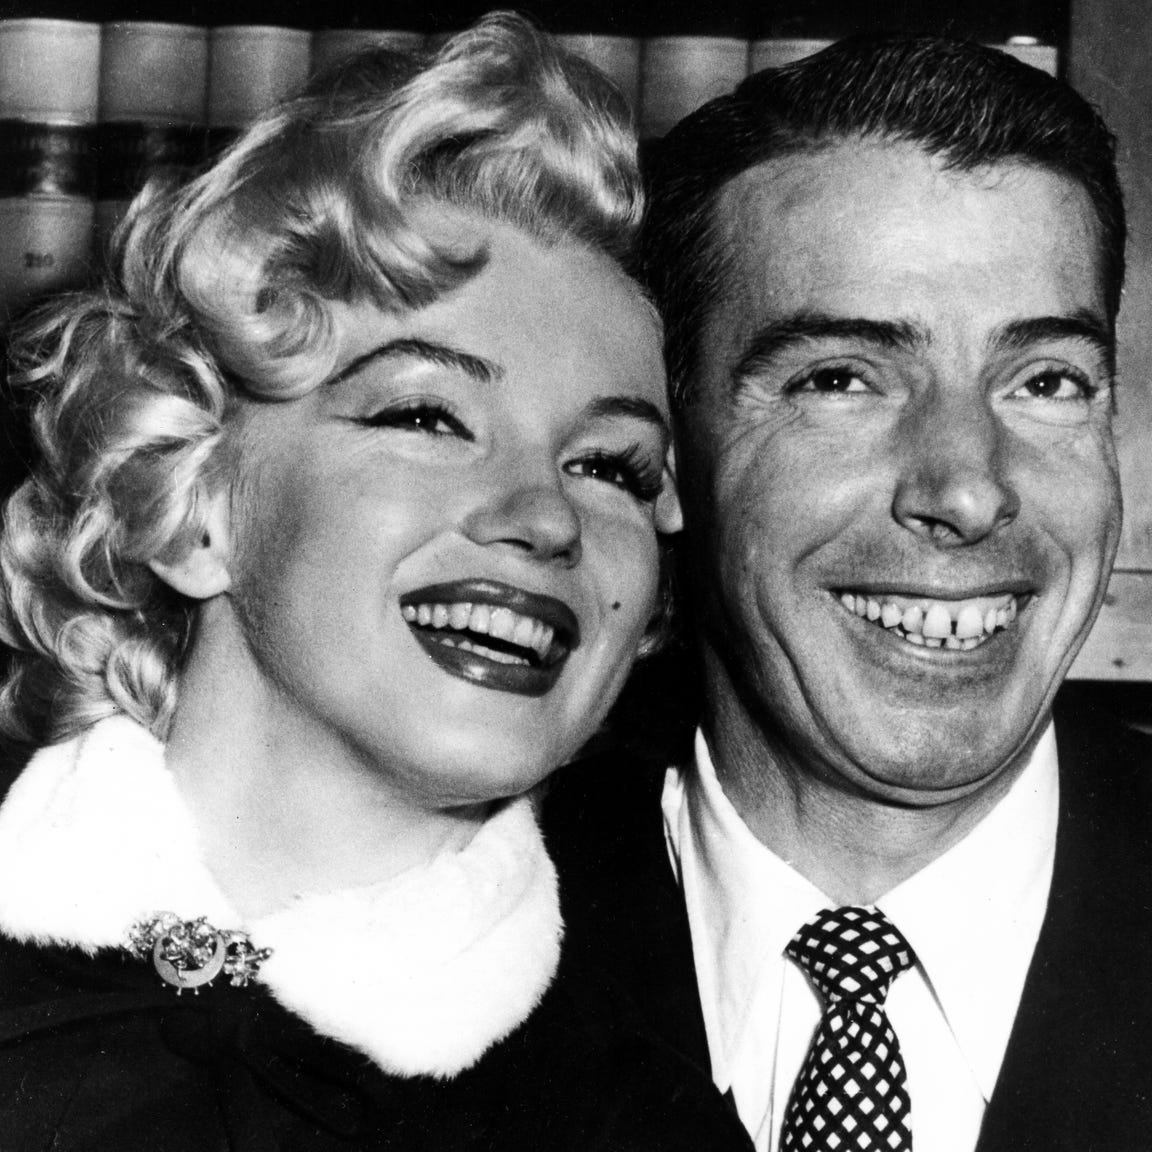 Joe Dimaggio, Baseball's famed 'Yankee Clipper' and actress Marilyn Monroe, smile cheek to cheek as they wait patiently in Judge Charles Perry's chambers for their marriage ceremony in san Francisco, CA., USA, January 14, 1954. The wedding climaxed a romance of more than a year.